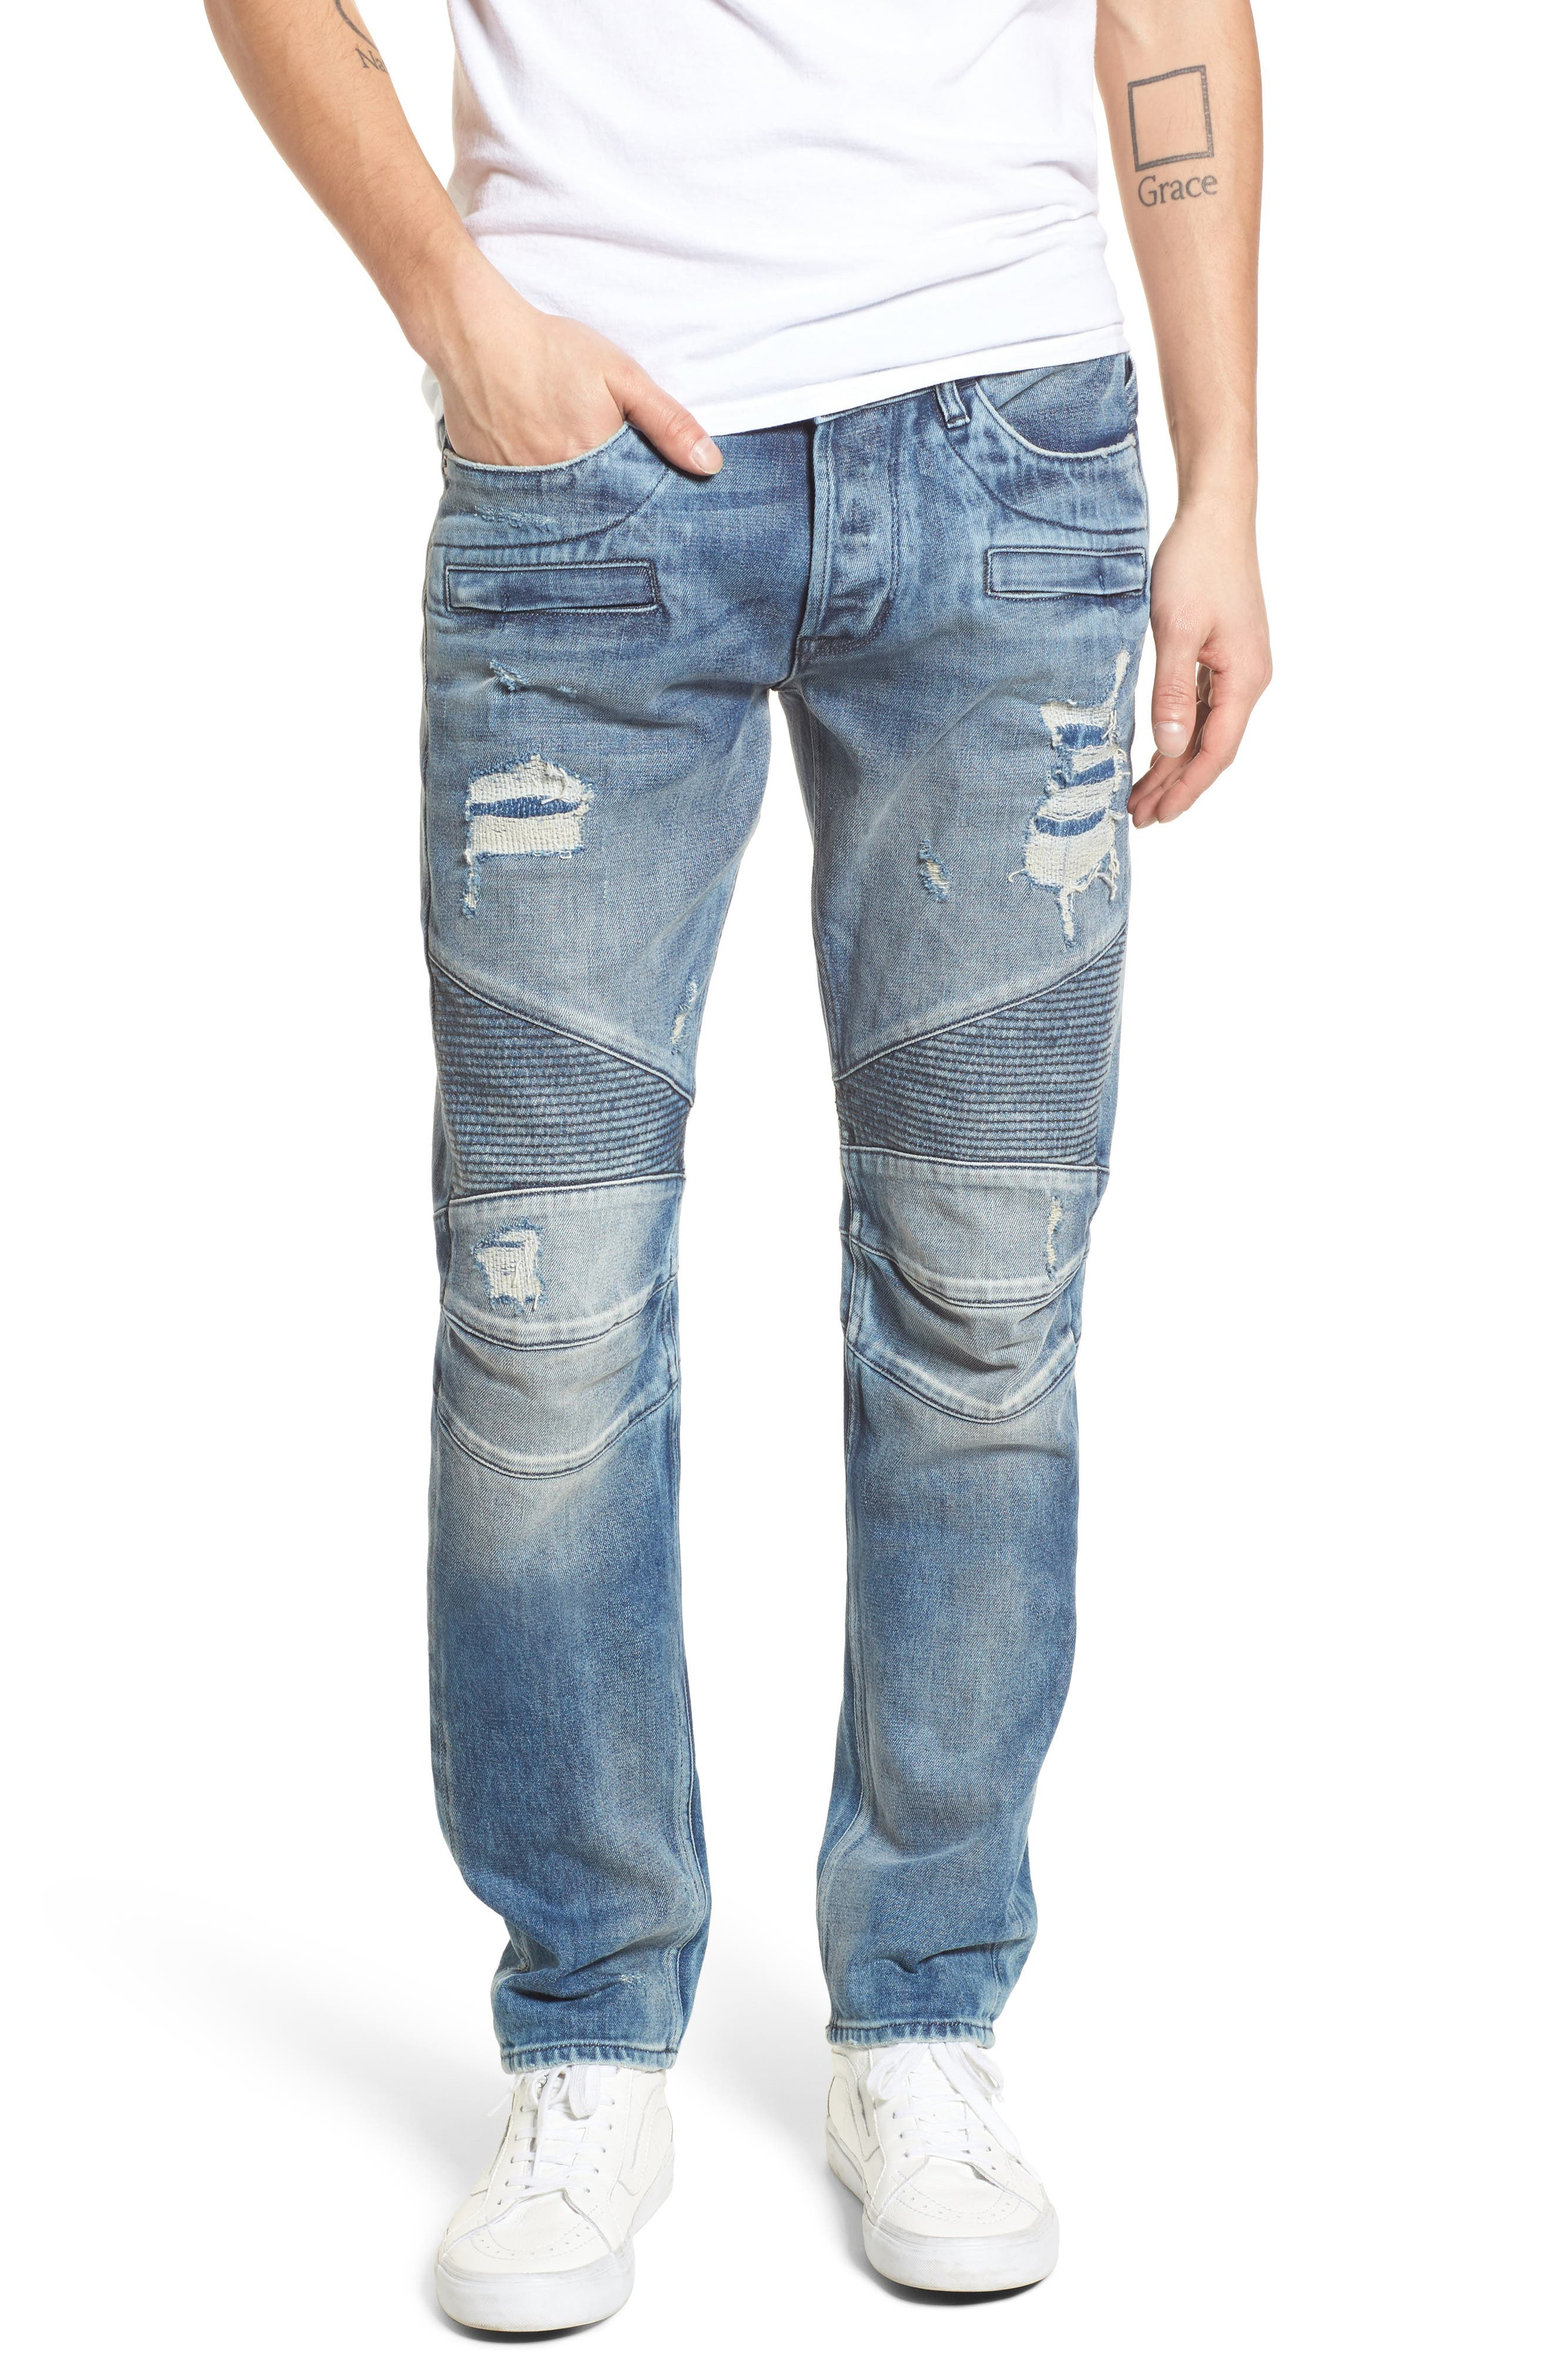 Blinder Biker Skinny Fit Jeans,                             Main thumbnail 1, color,                             CHOPPER